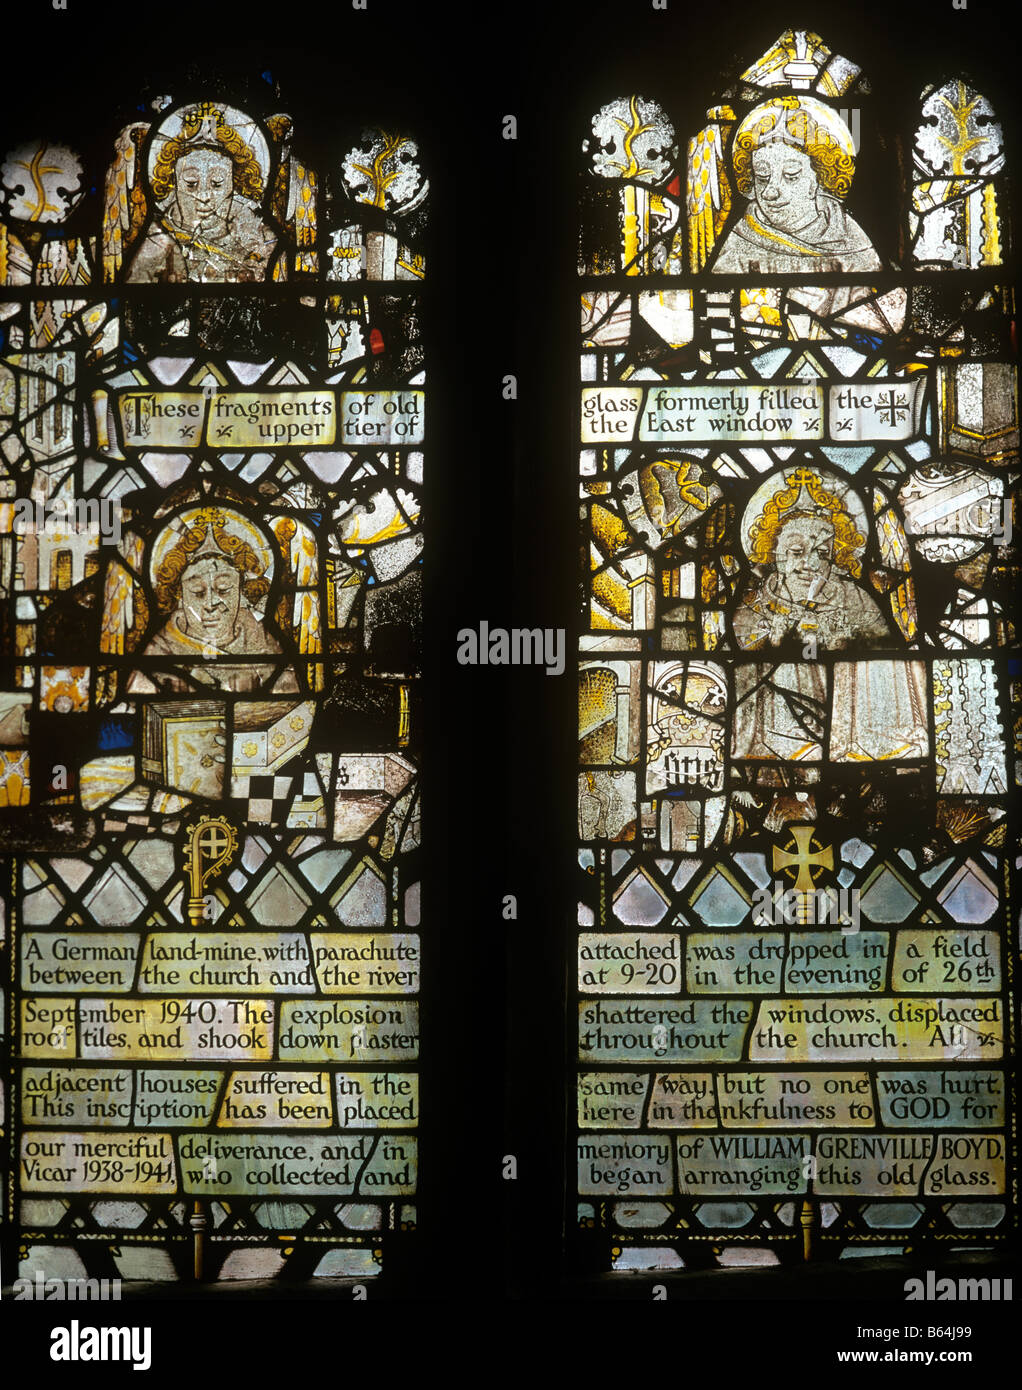 UK England Oxfordshire Swinbrook medieval glass fragments in church window - Stock Image